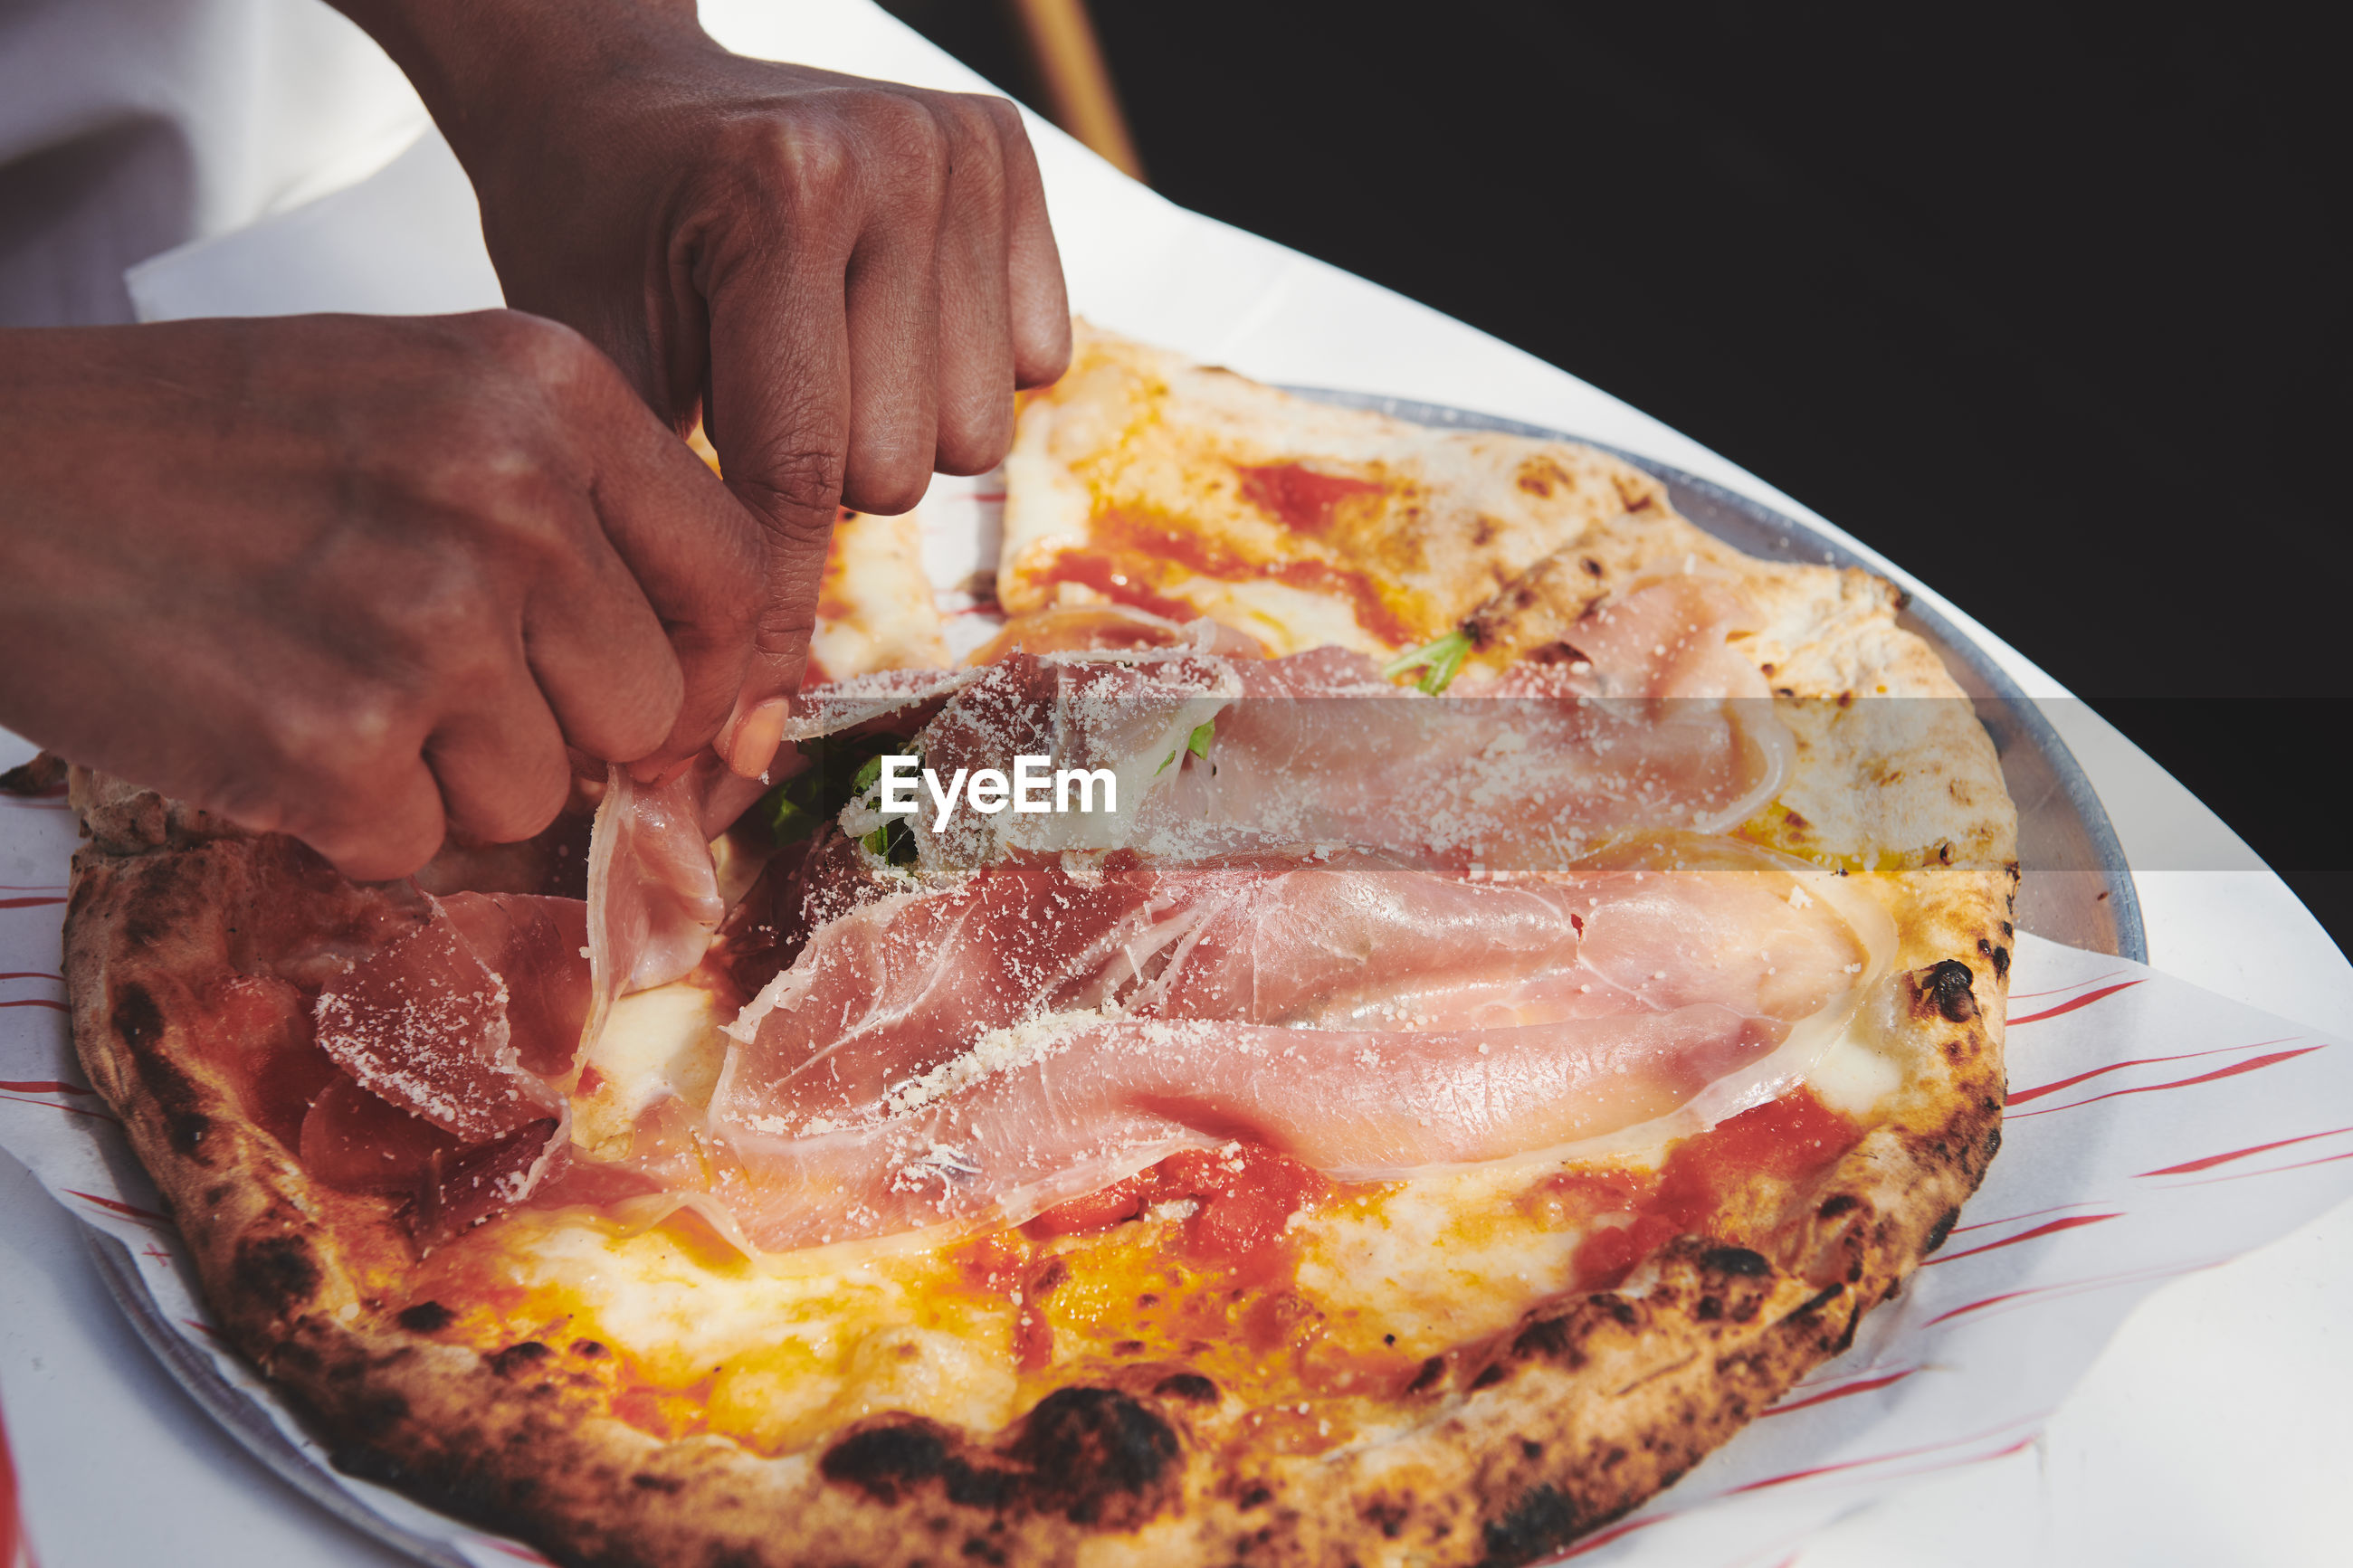 food, food and drink, dish, freshness, cuisine, fast food, hand, meat, pizza, meal, one person, indoors, plate, close-up, business, table, breakfast, unhealthy eating, slice